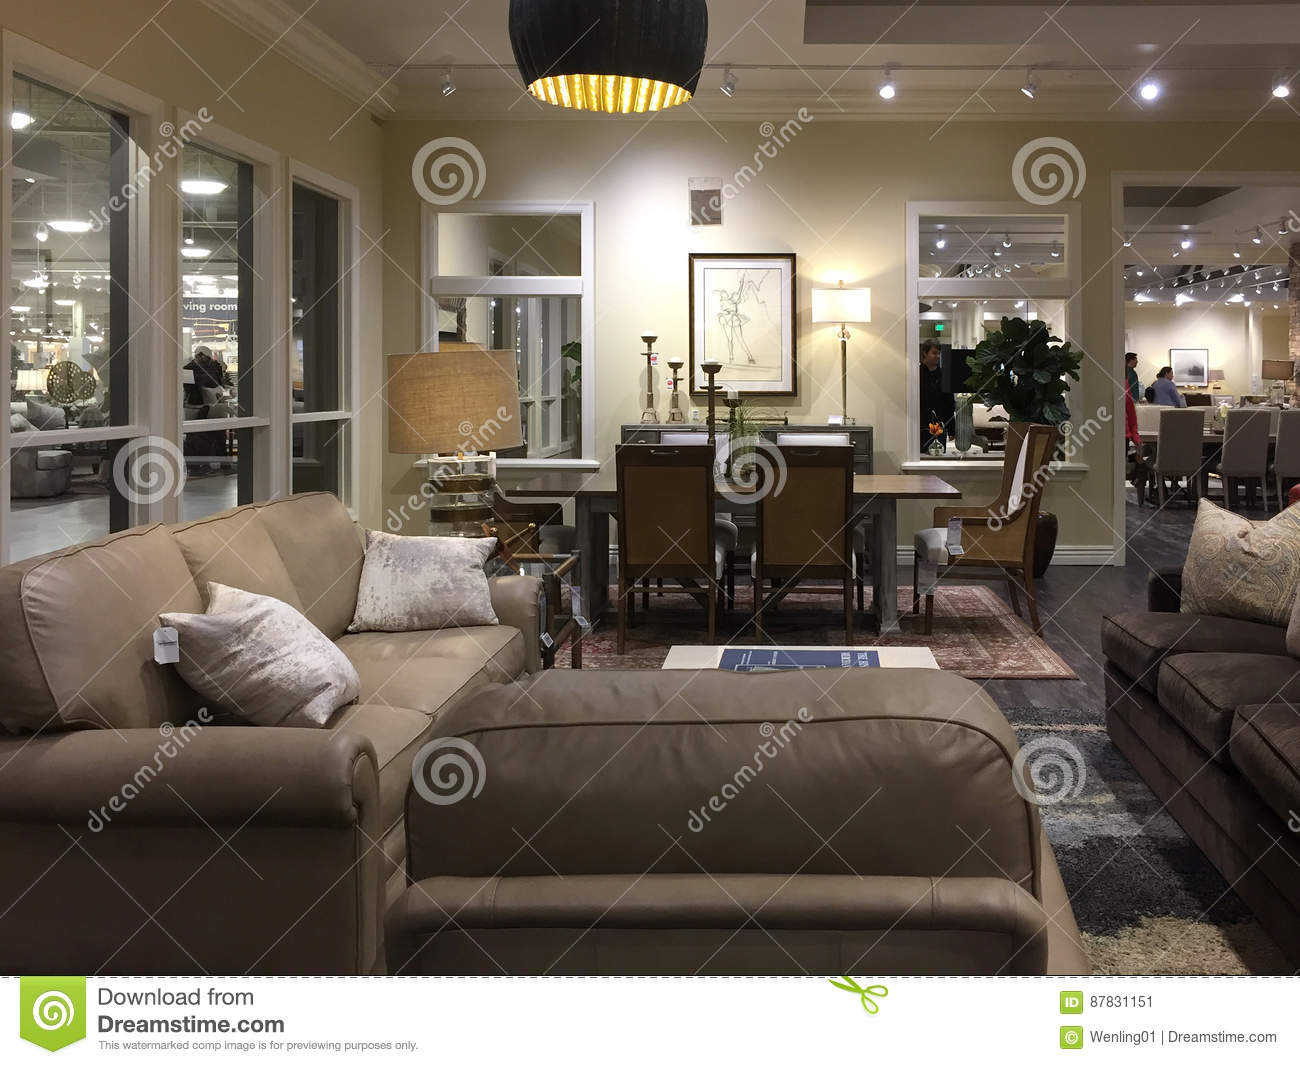 Nice modern family room furniture for sale at a furniture market tx usa